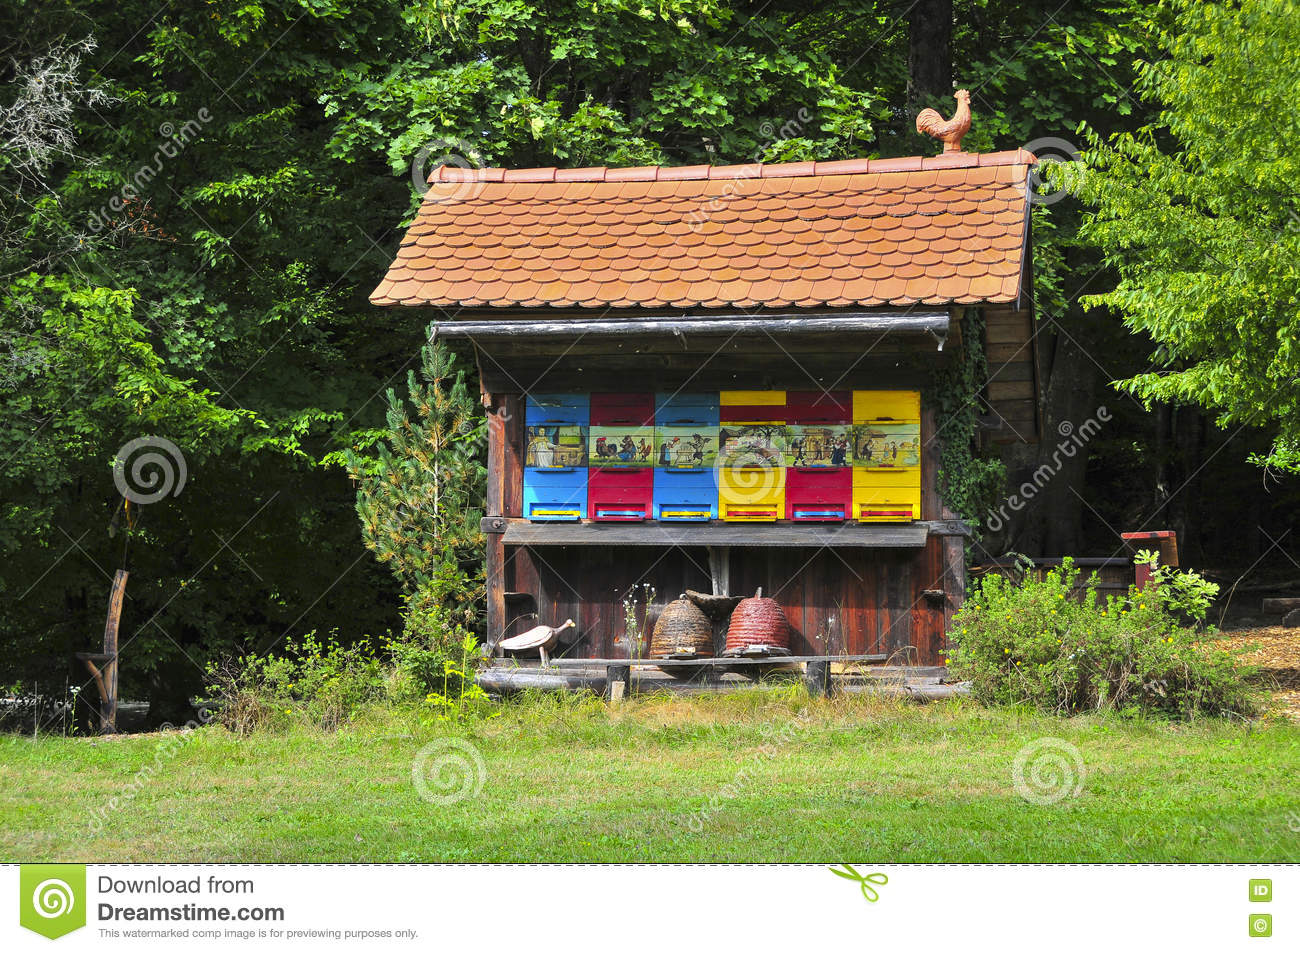 Traditional colorful and picturesque wooden bee hive in Slovenia